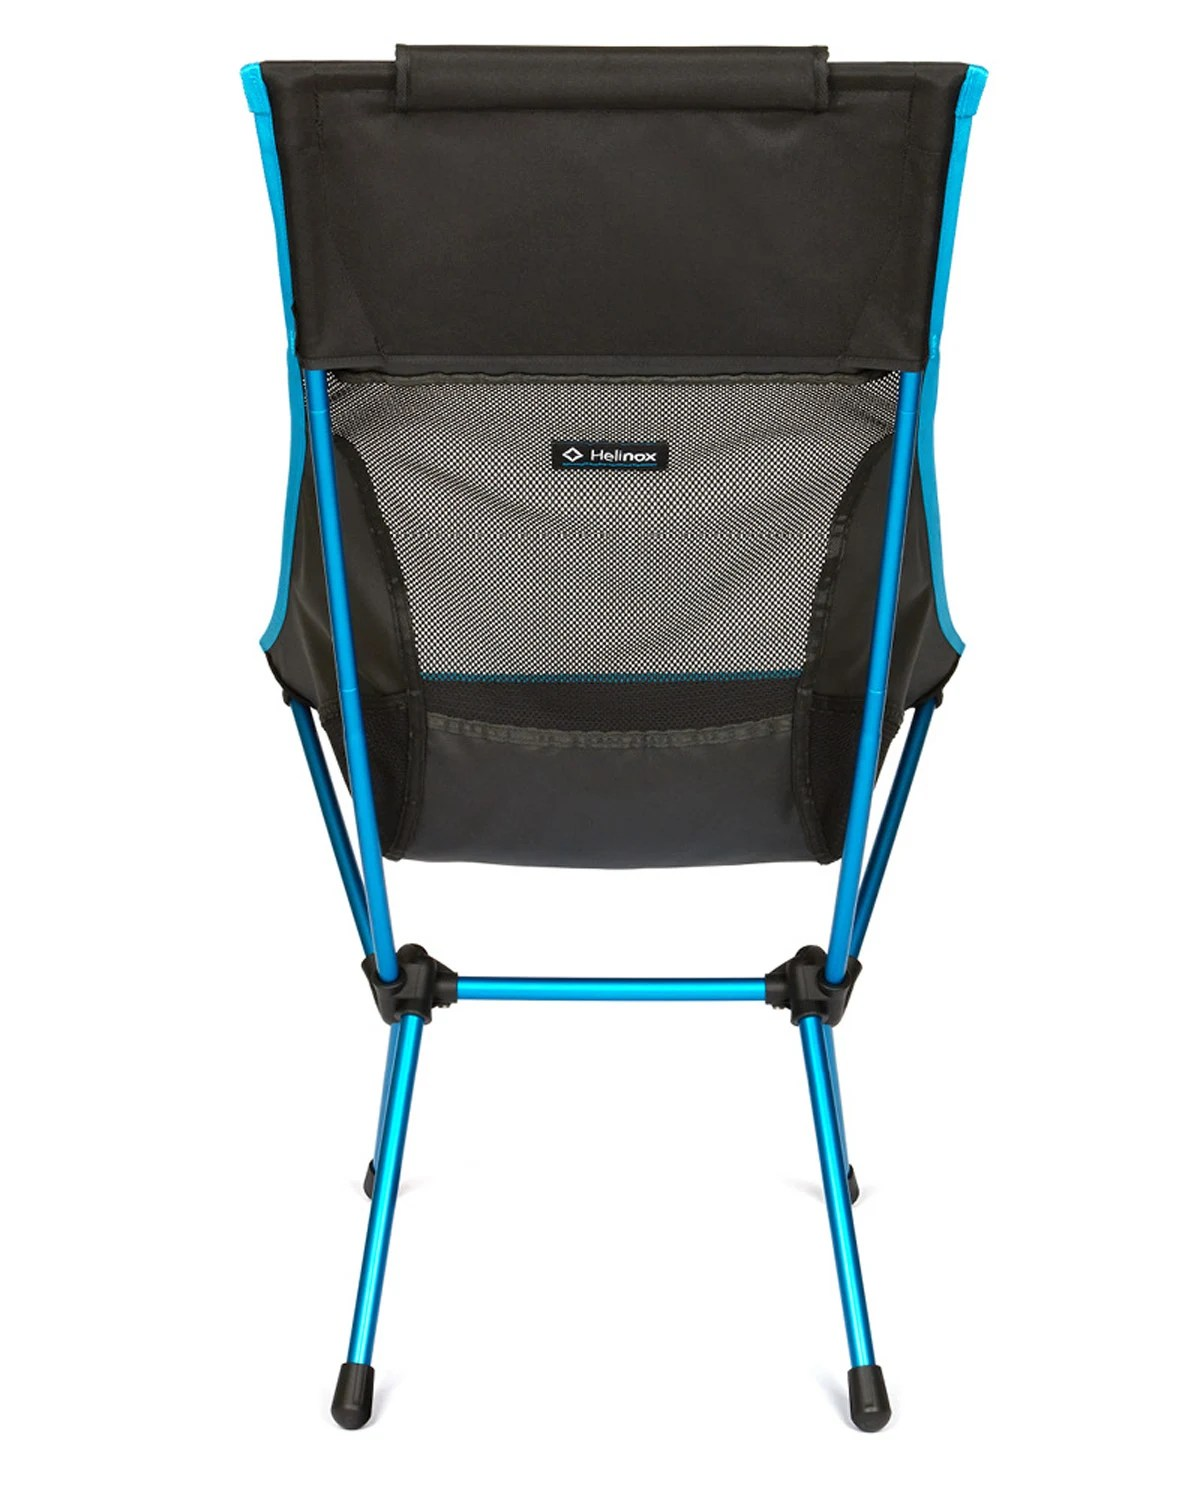 Camping Chairs Sale On Sale Helinox Sunset Chair Camping Chair Up To 40 Off